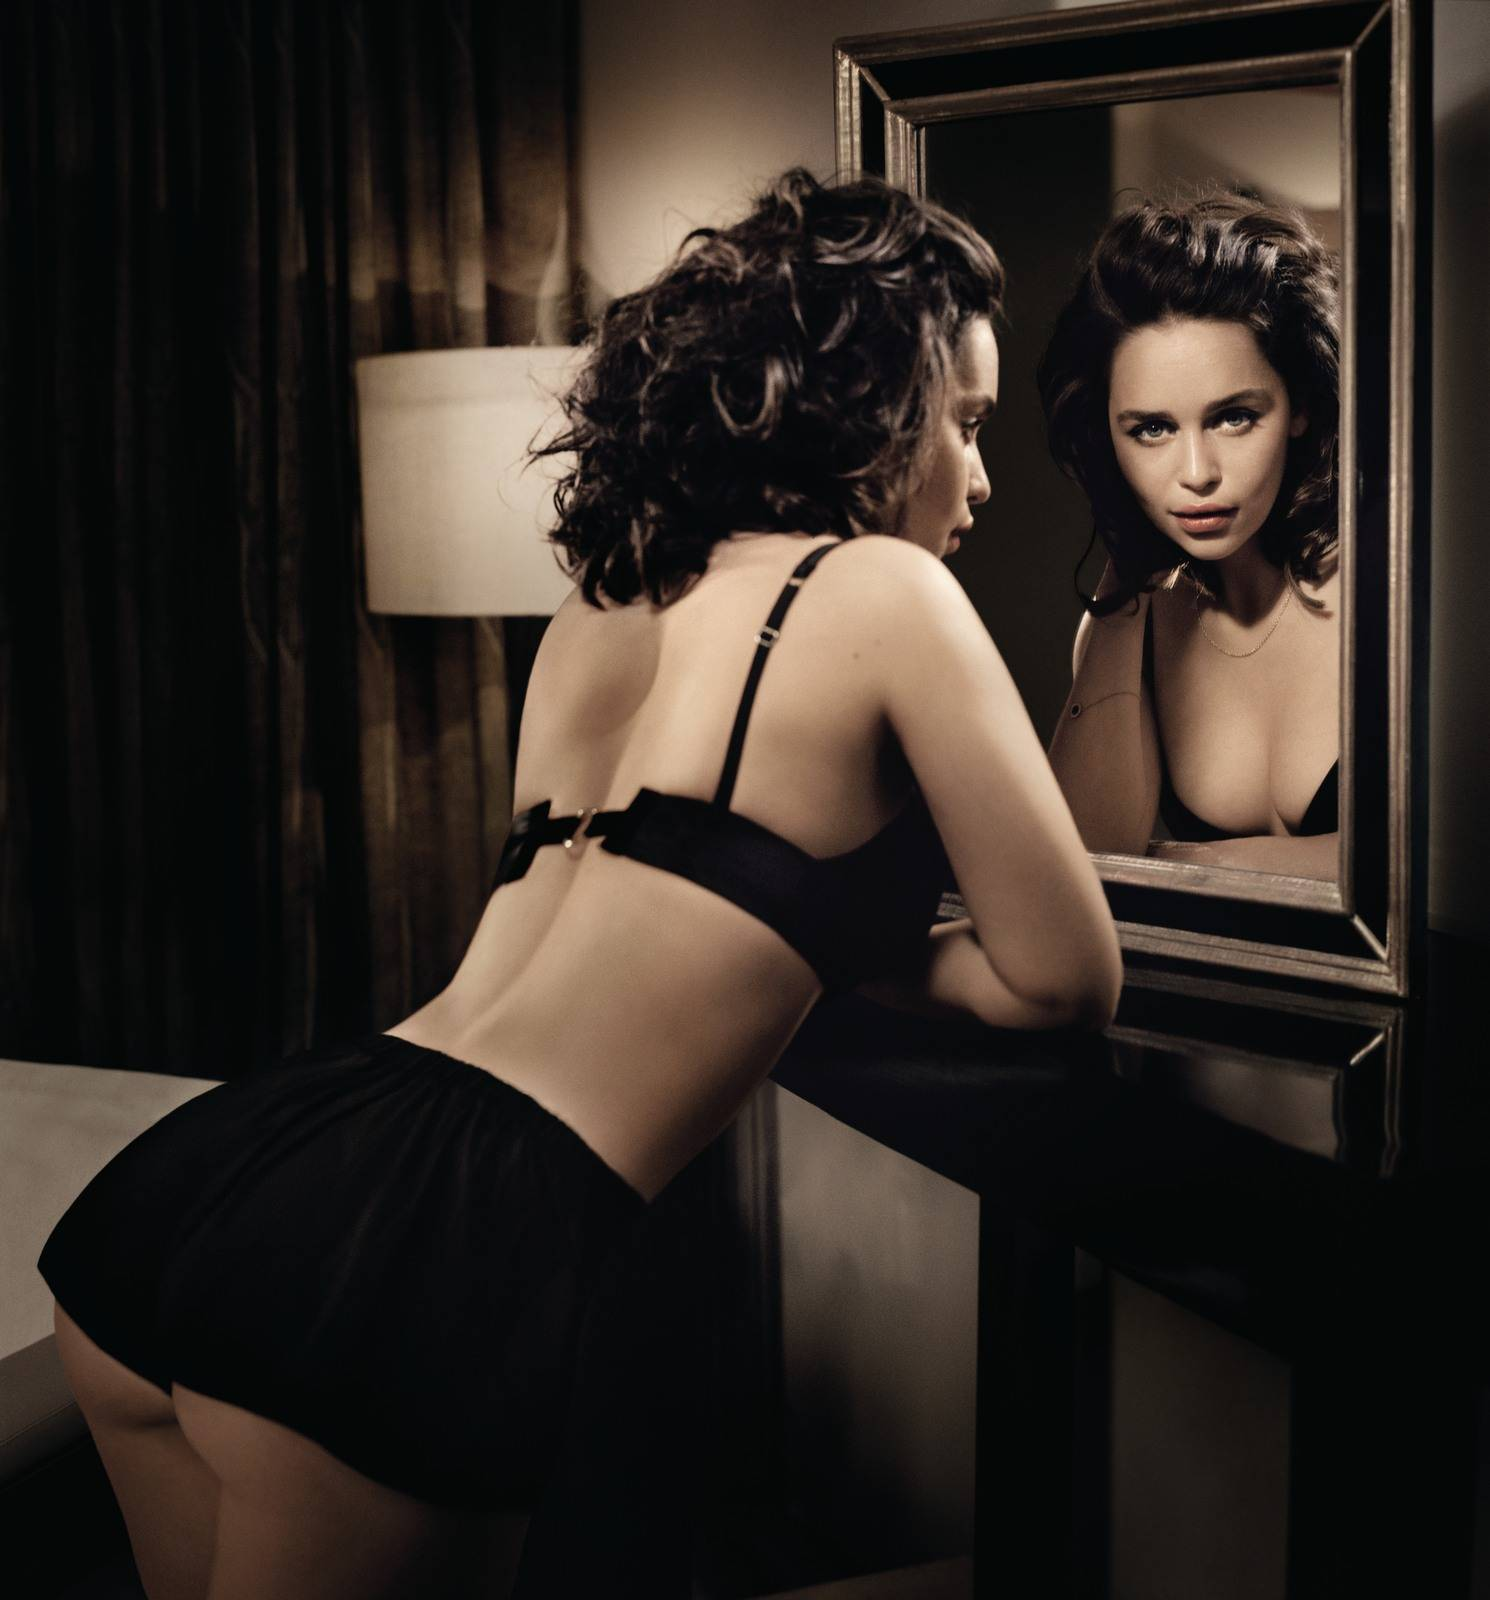 52 Hot Pictures Of Emilia Clarke Will Get You Addicted To Her